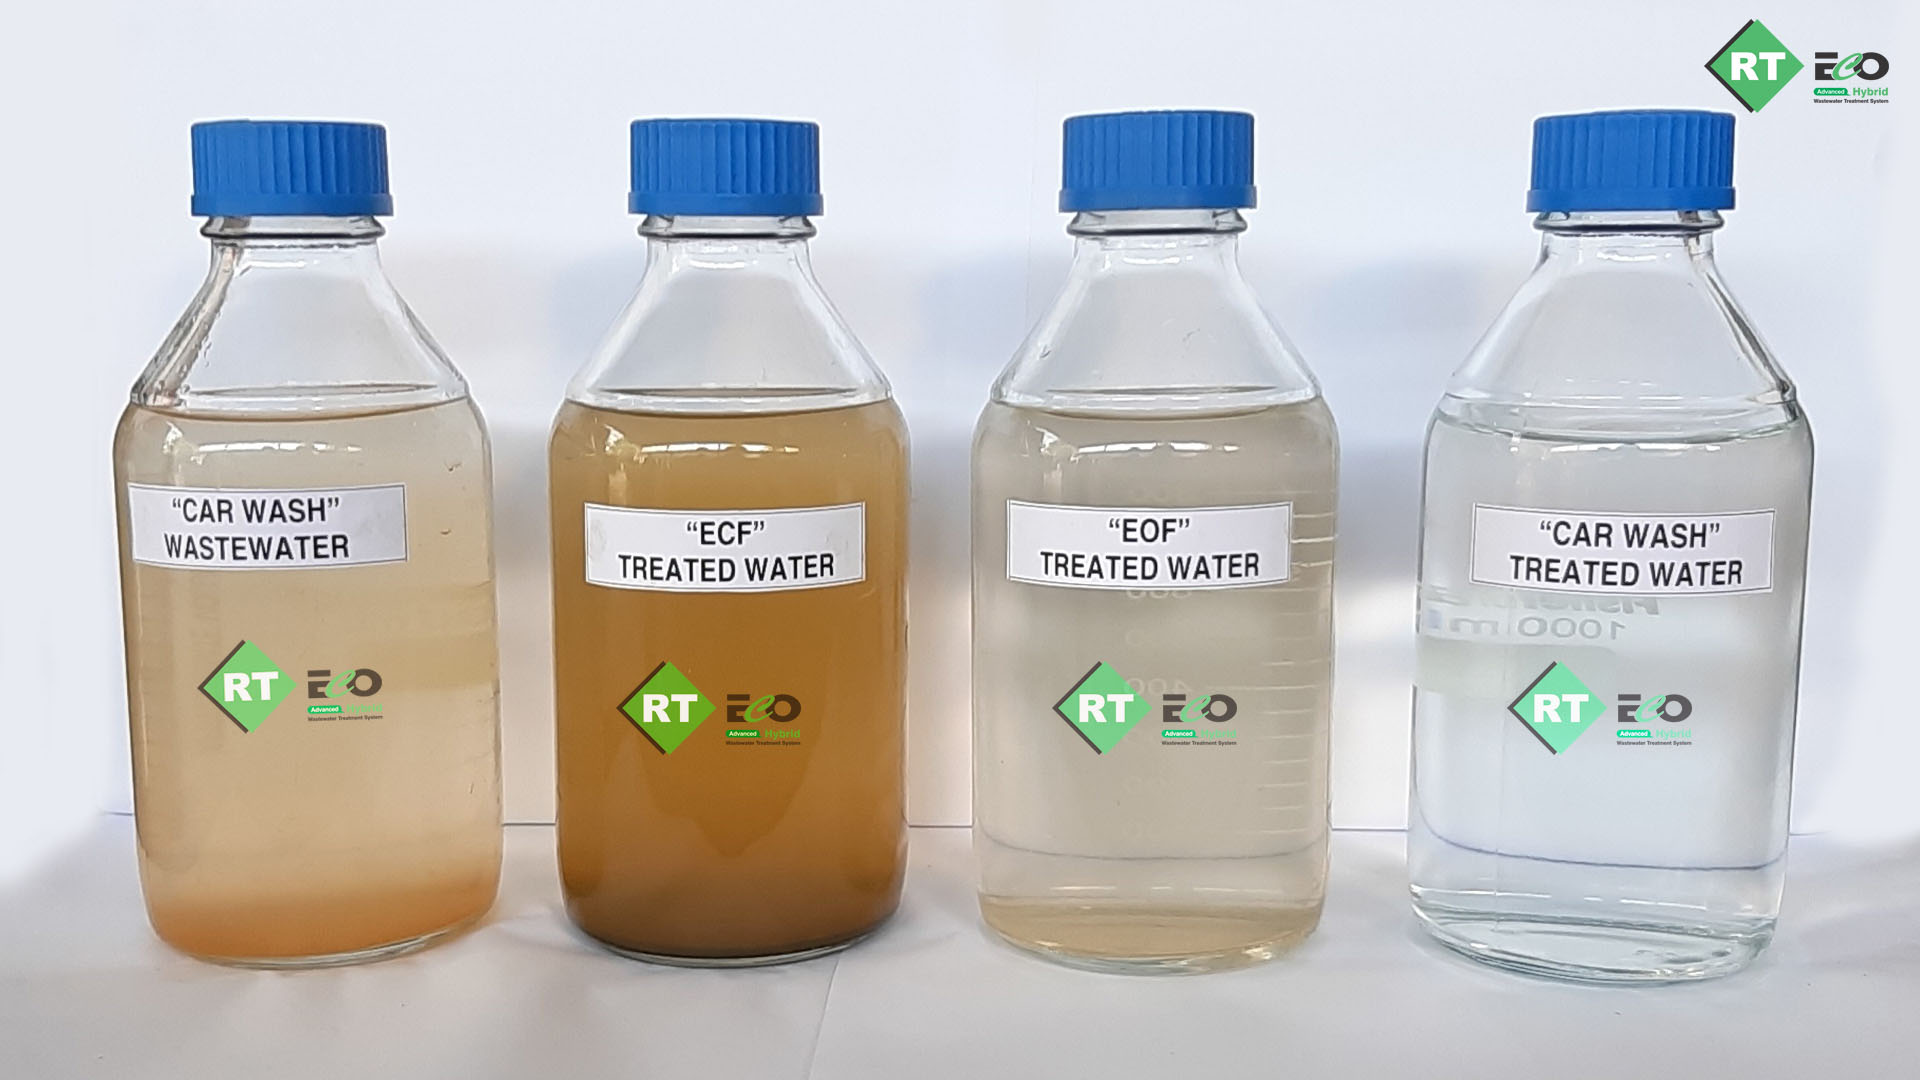 Car wash Wastewater before after treatment samples